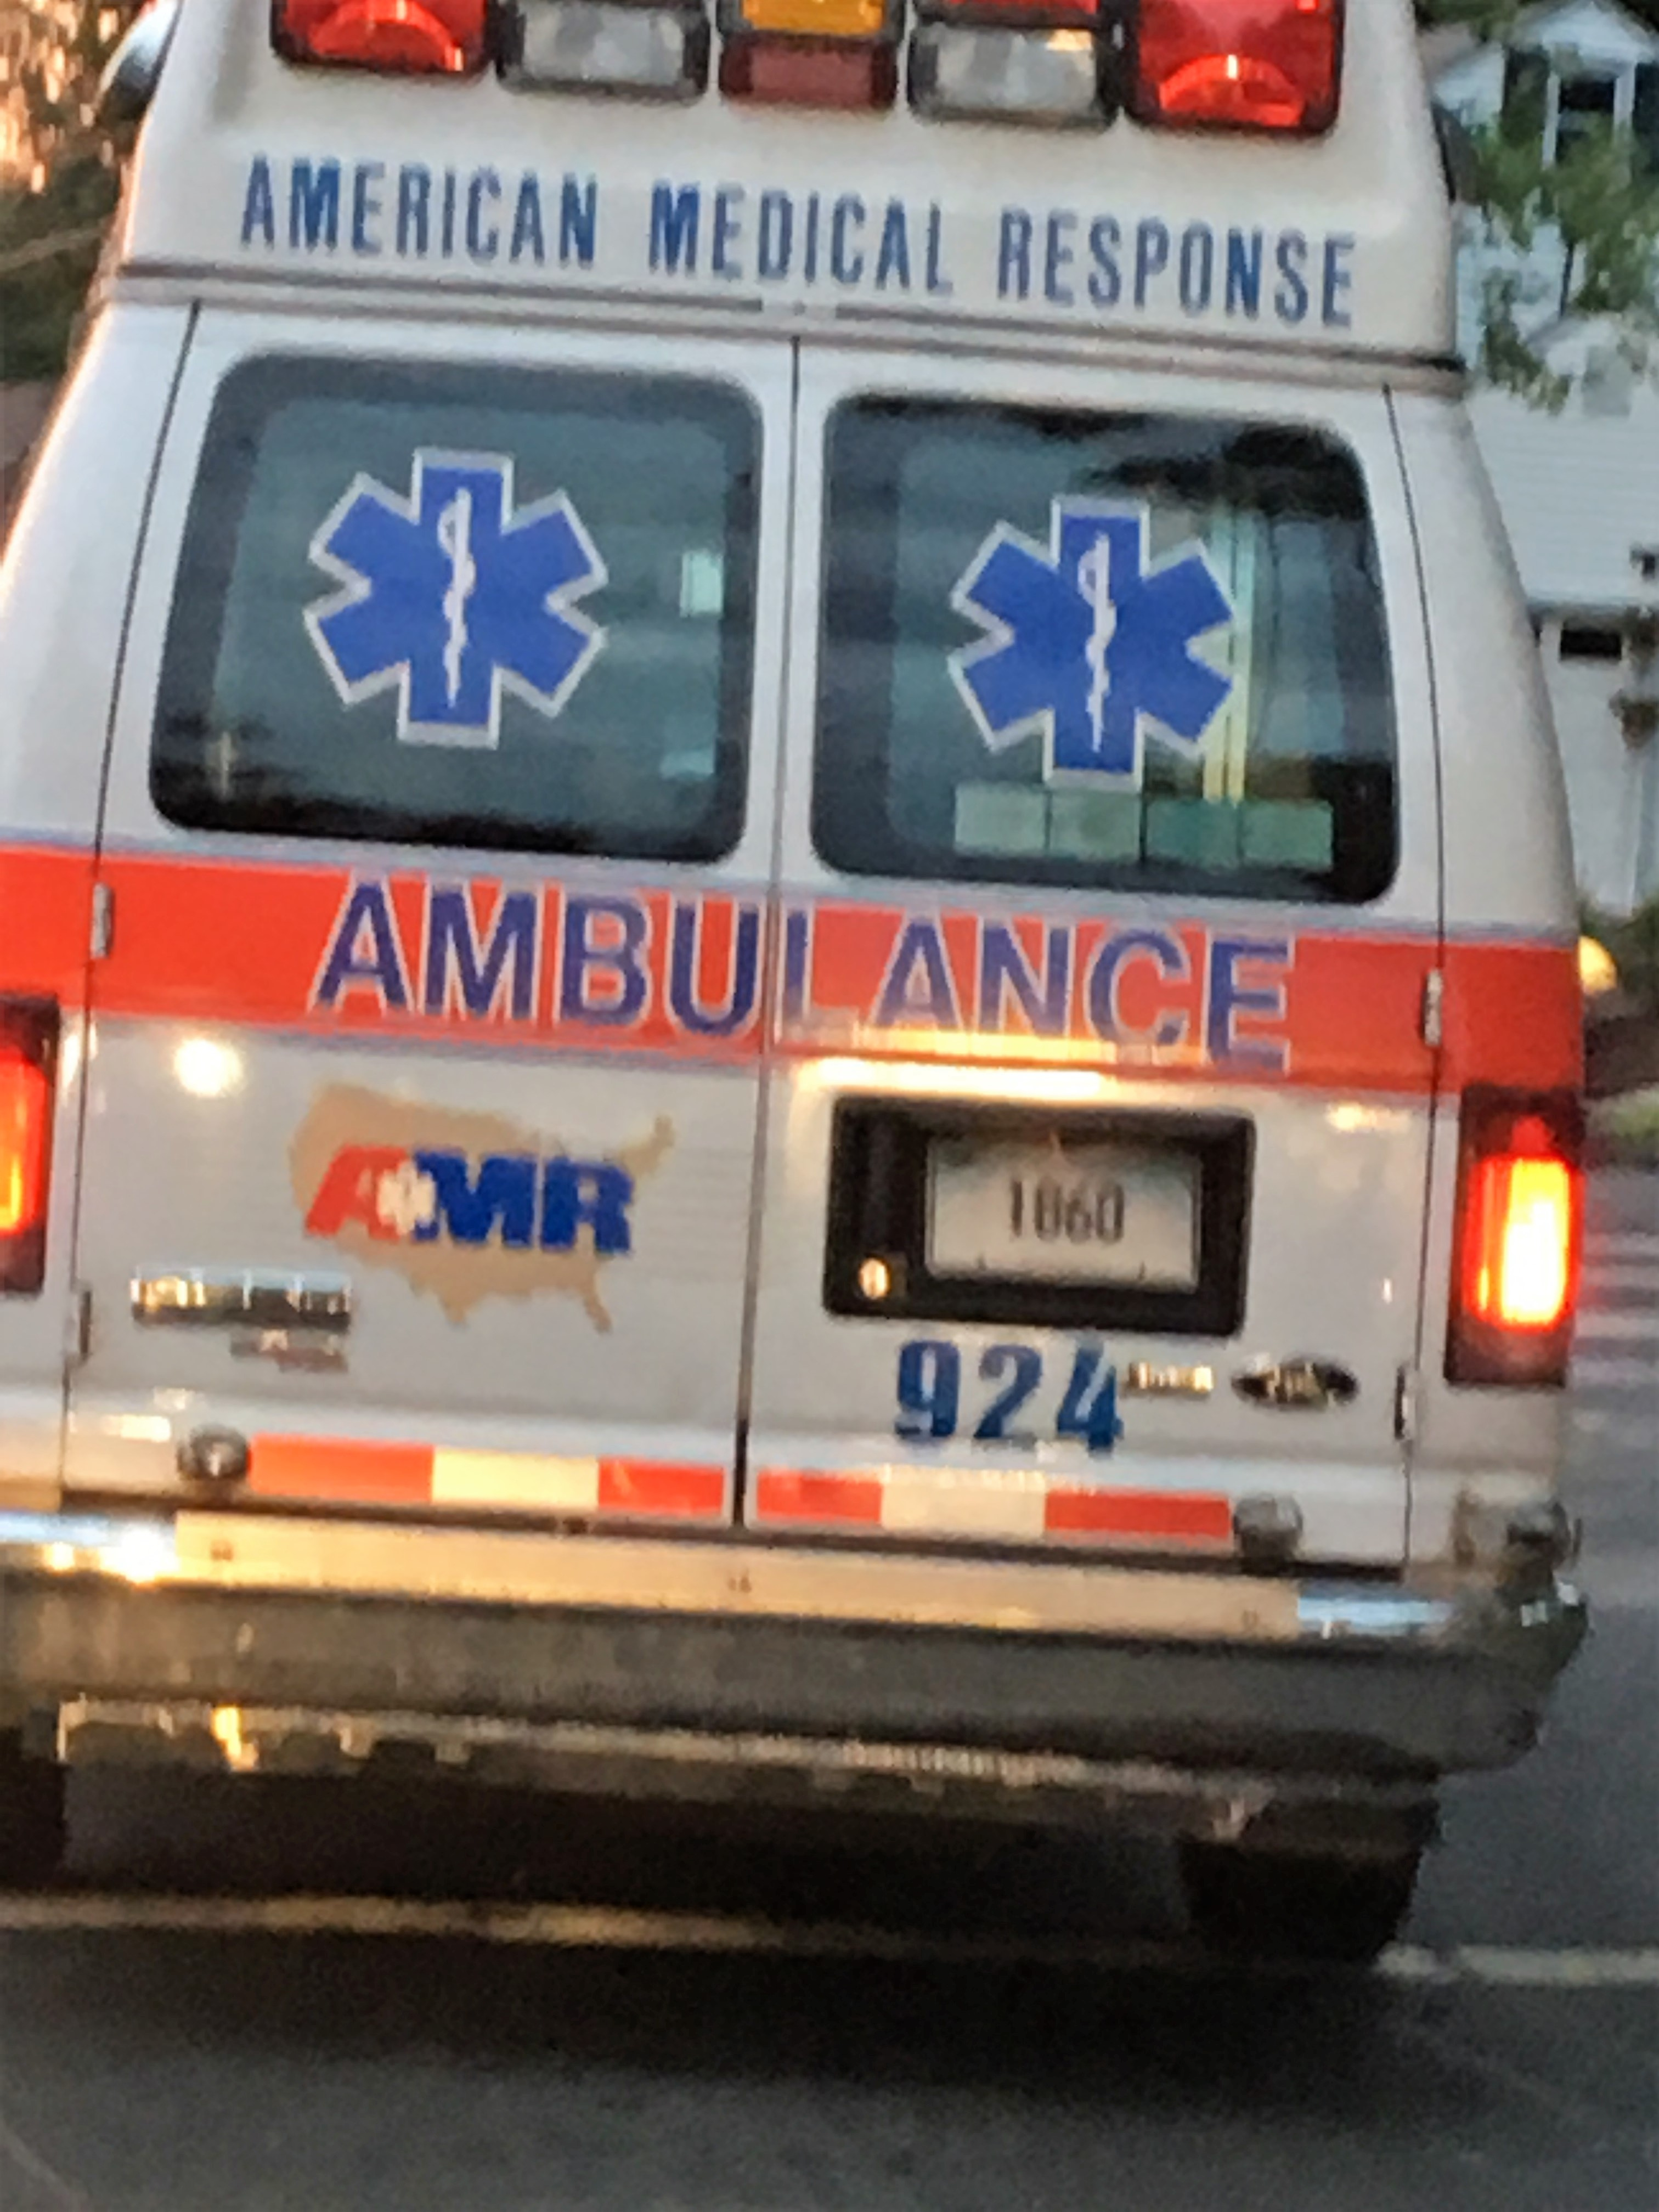 The ambulance took me to the hospital.JPG